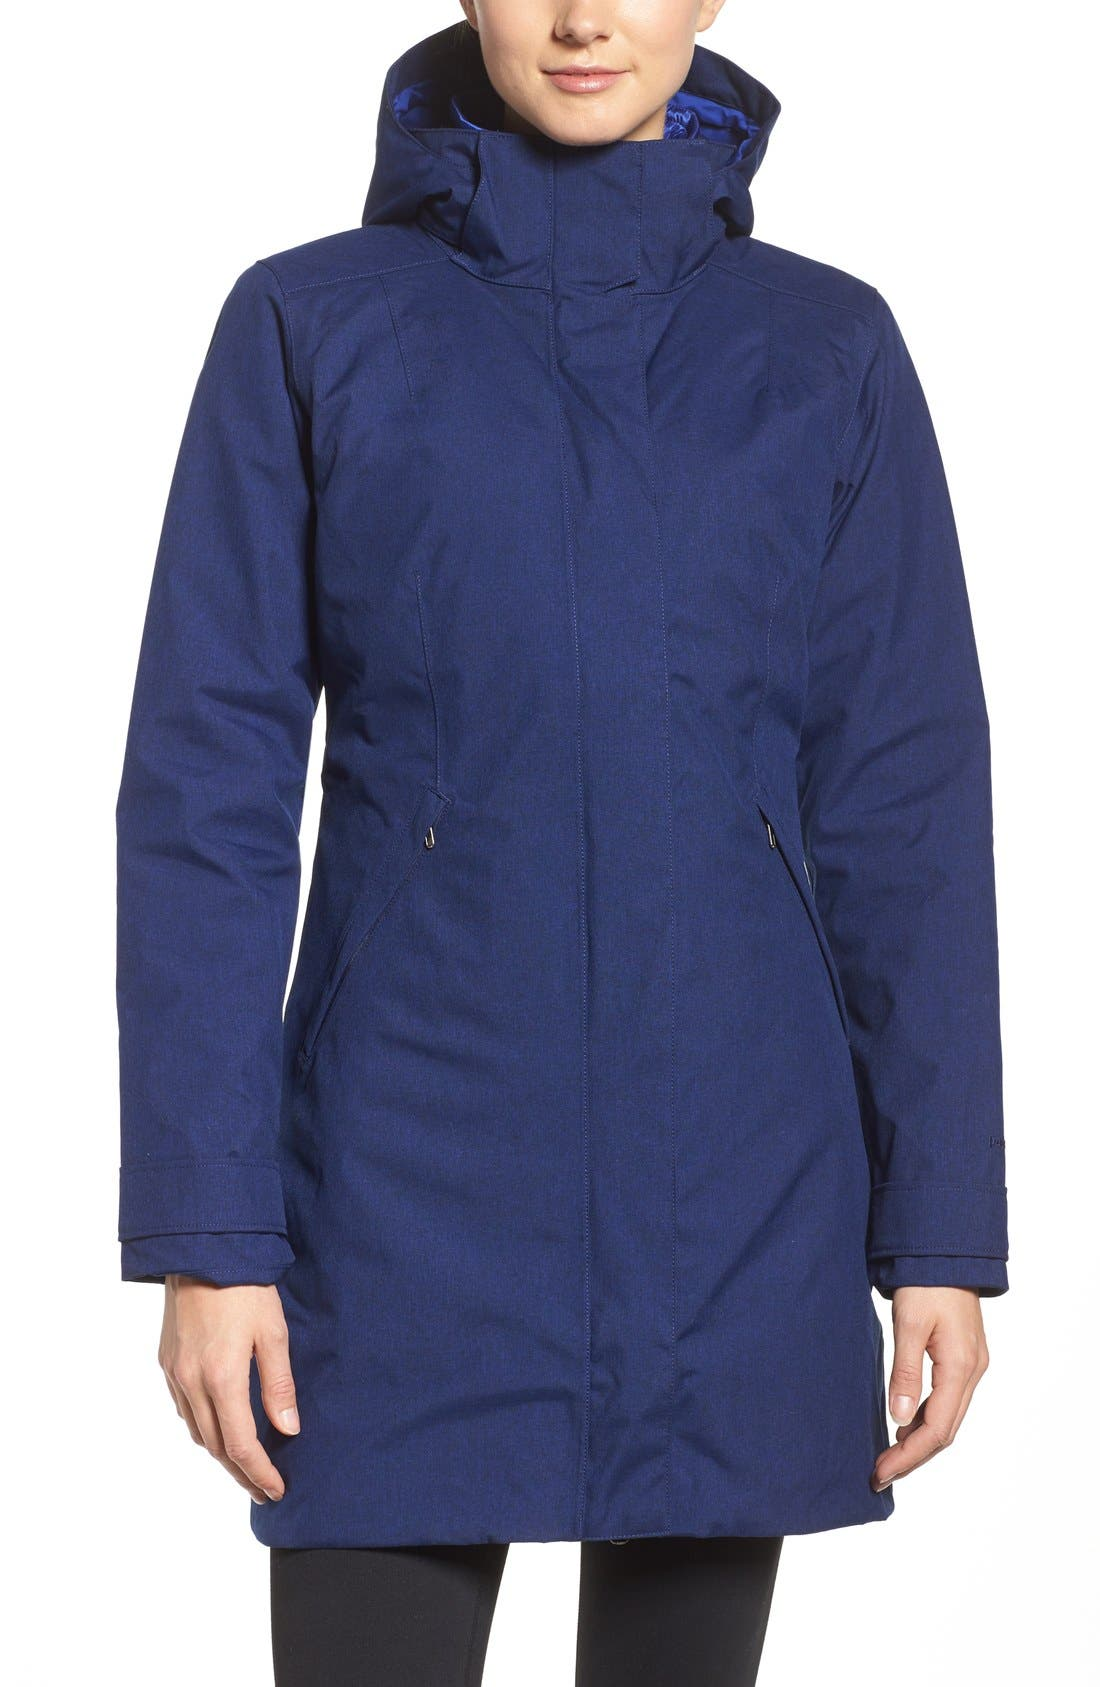 Alternate Image 1 Selected - Patagonia 'Vosque' 3-in-1 Parka (Online Only)